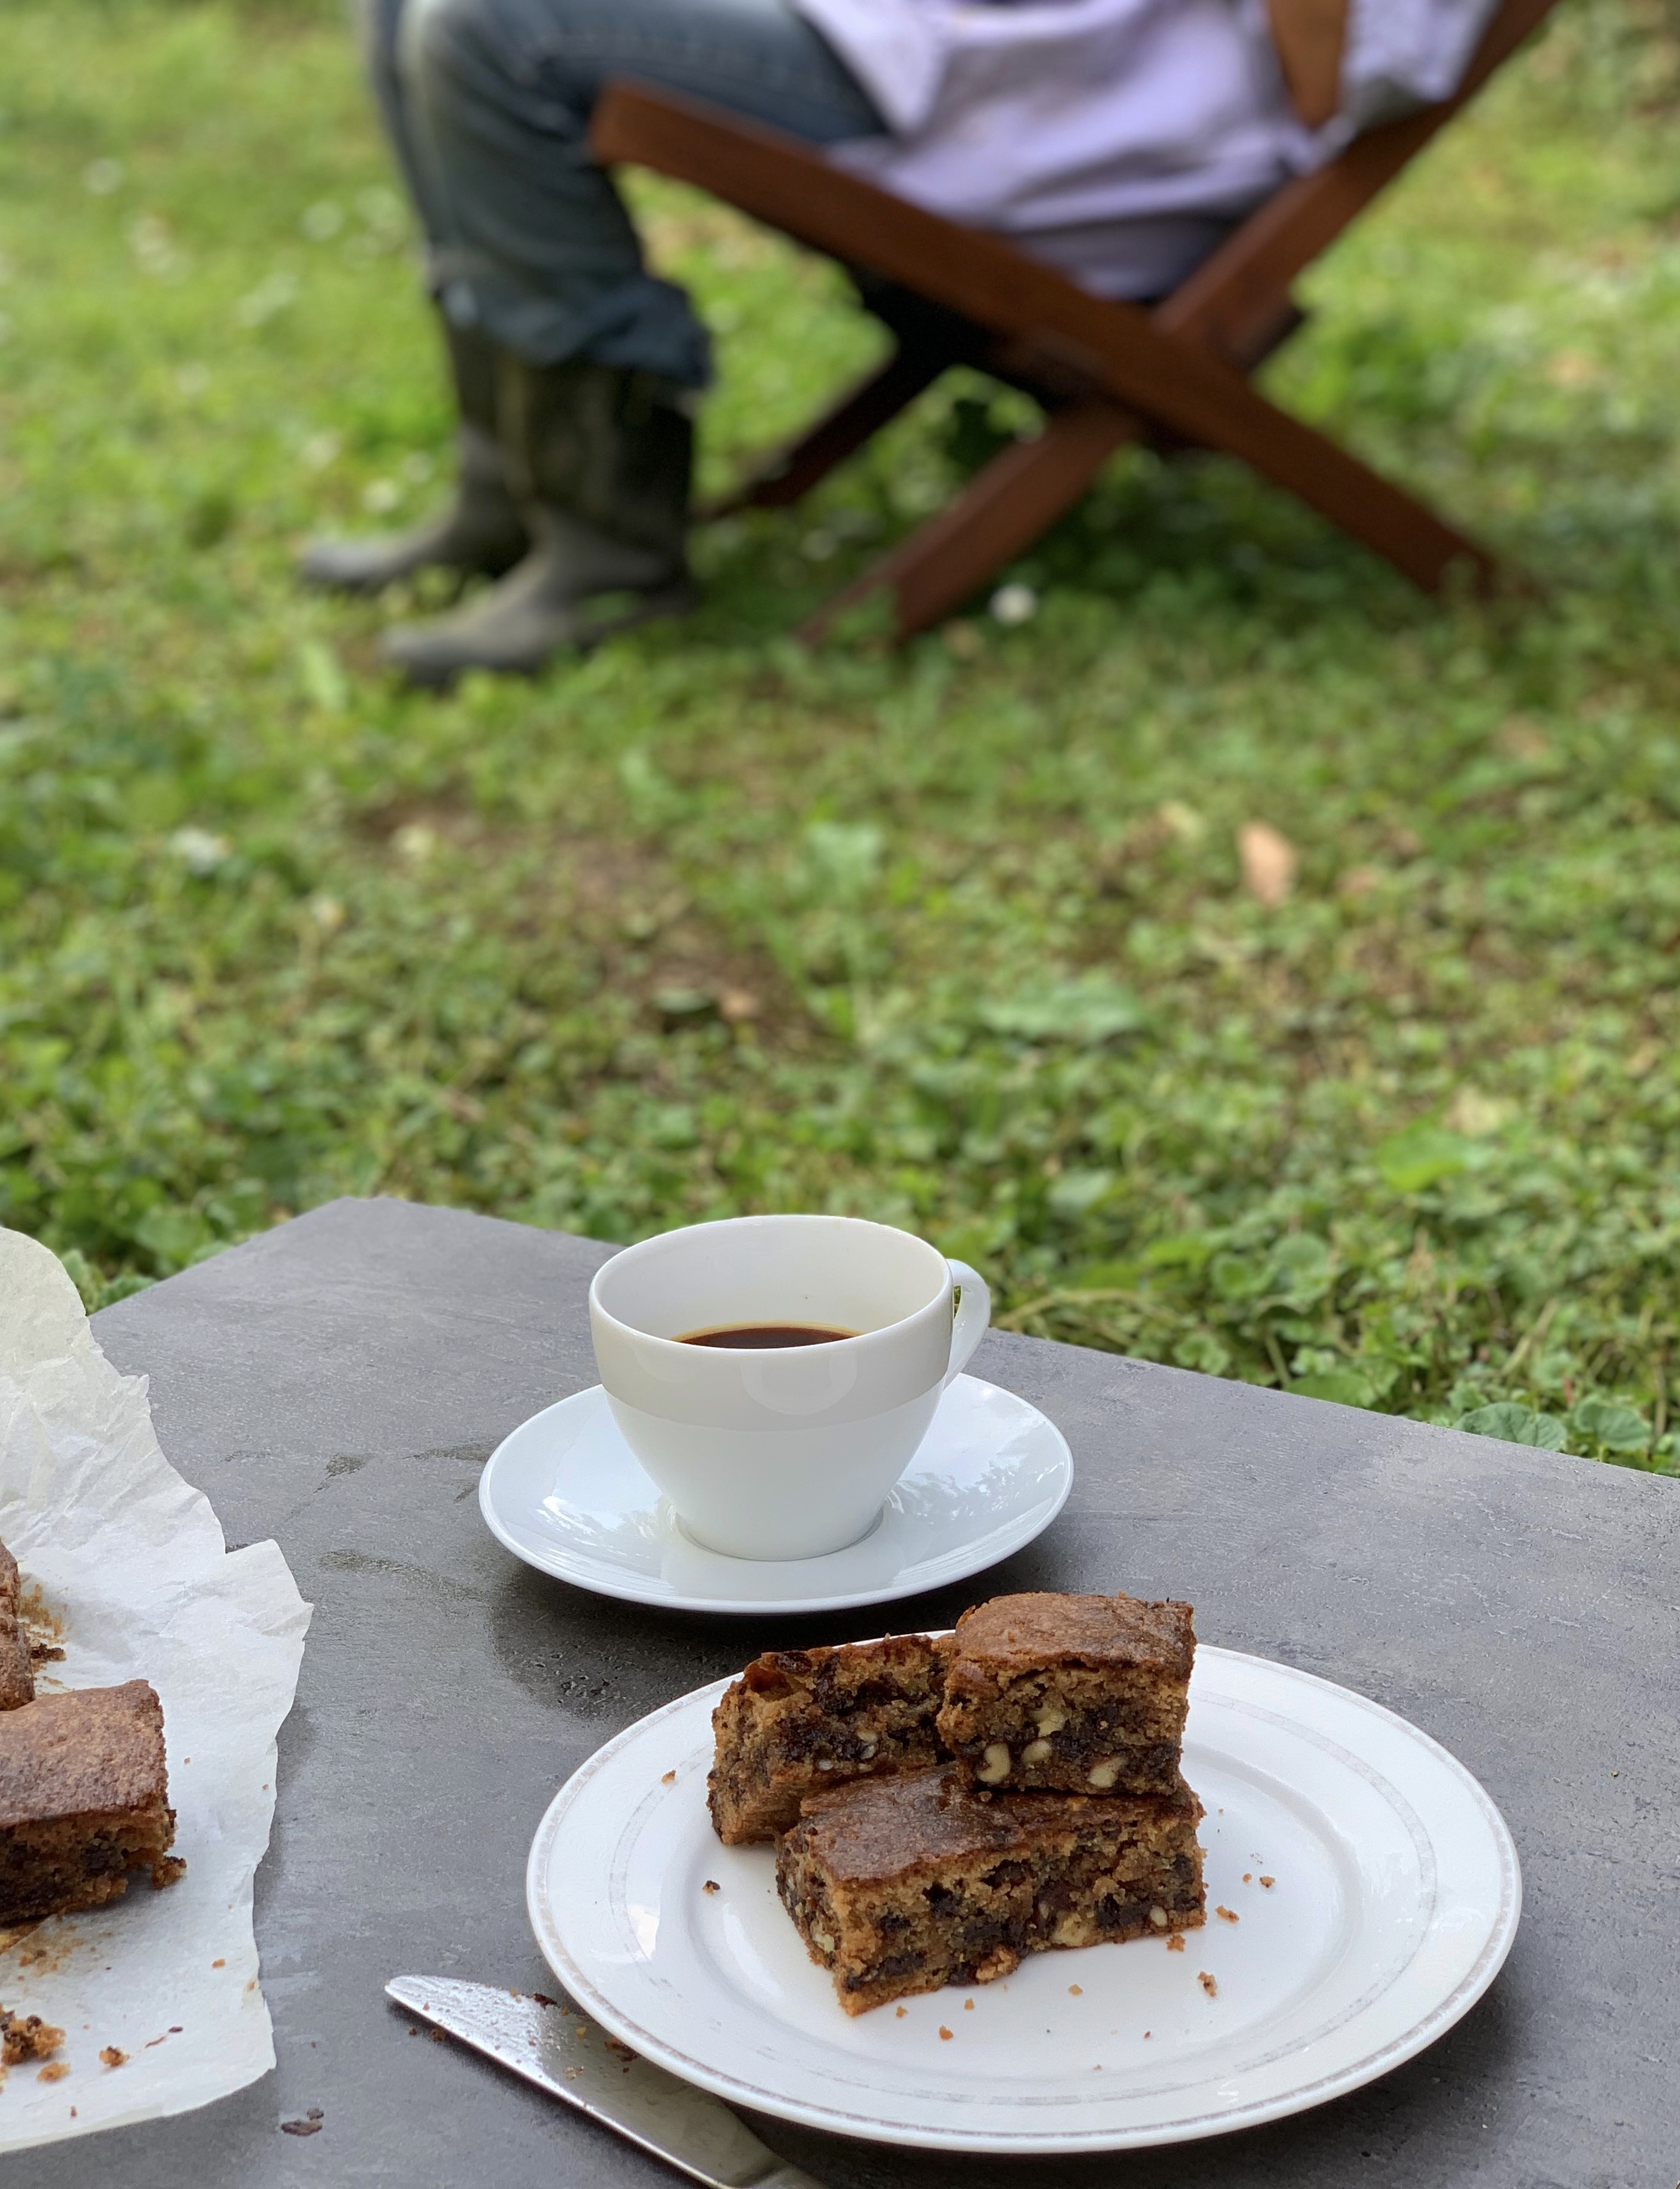 Picture of keto blondies on a garden table